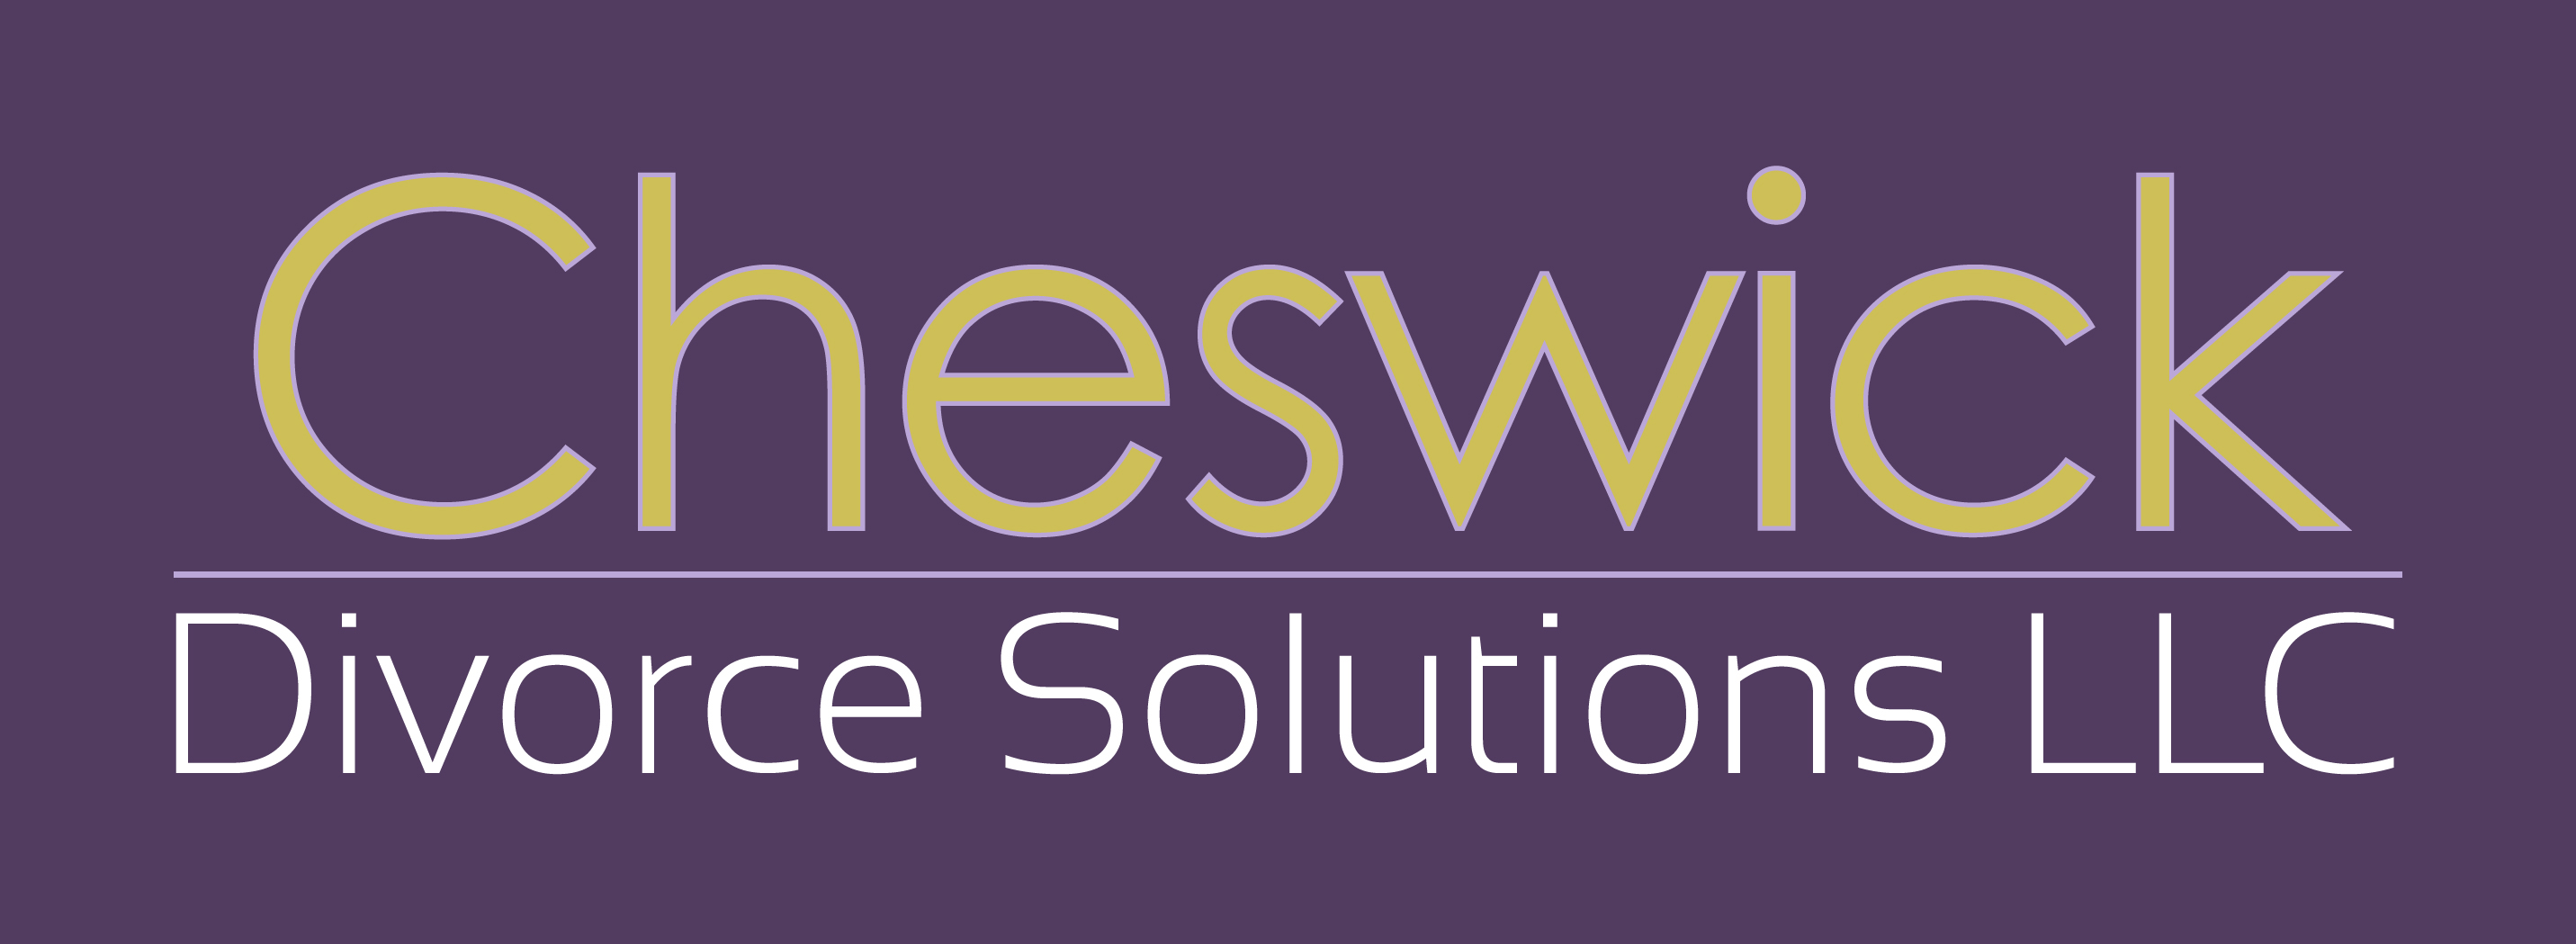 Cheswick Divorce Services logo